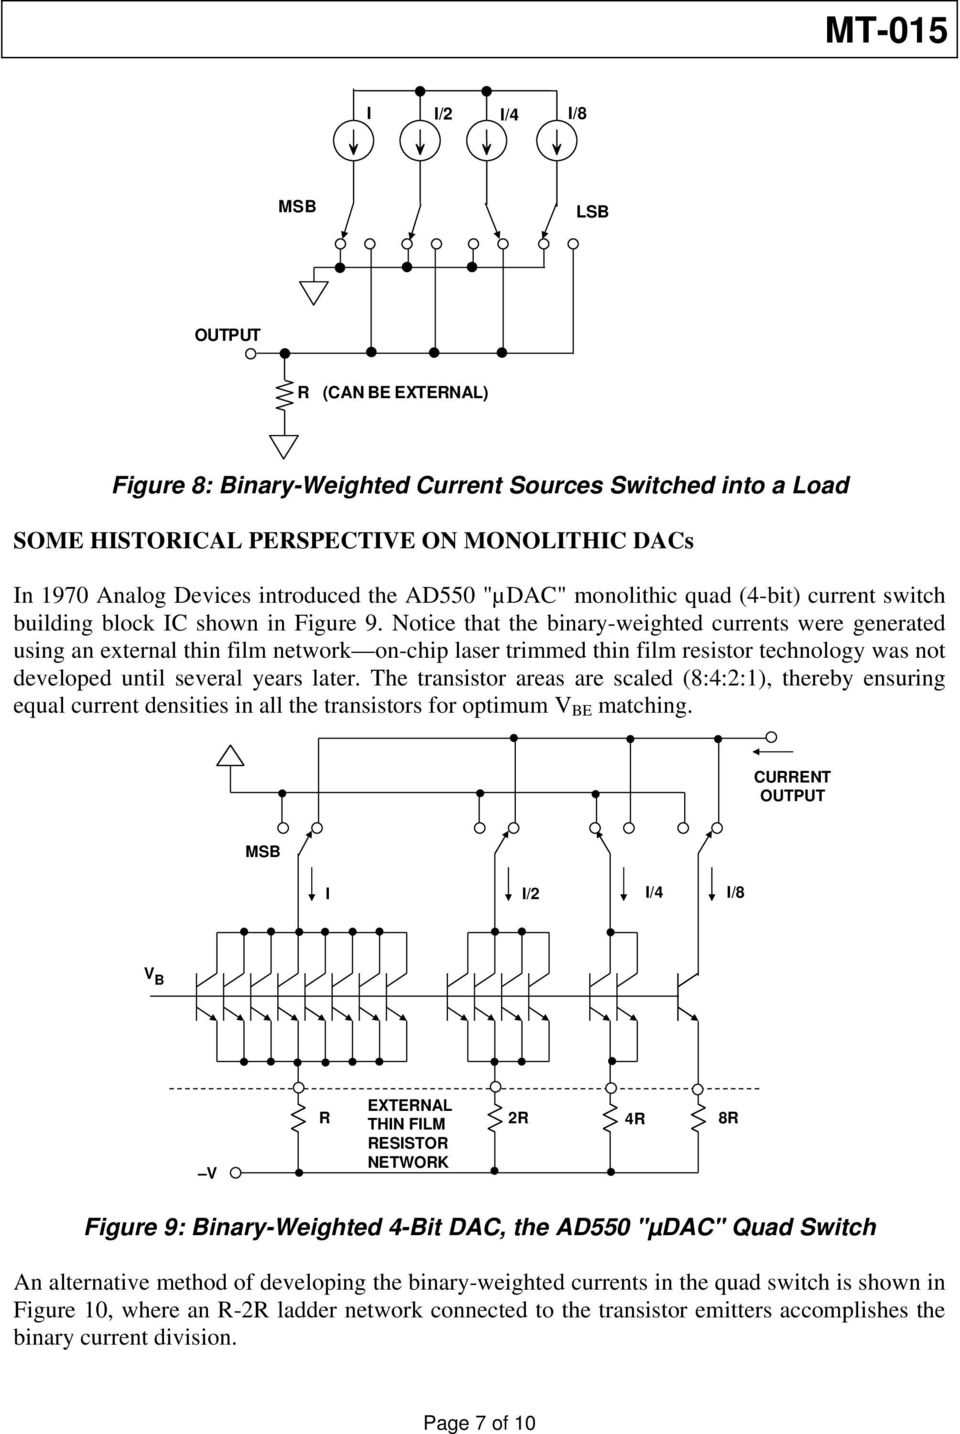 Basic Dac Architectures Ii Binary Dacs By Walt Kester Pdf Working Of 4 Bit R 2r Ladder D A Converter Circuit 1 Technical Notice That The Weighted Currents Were Generated Using An External Thin Film Network On